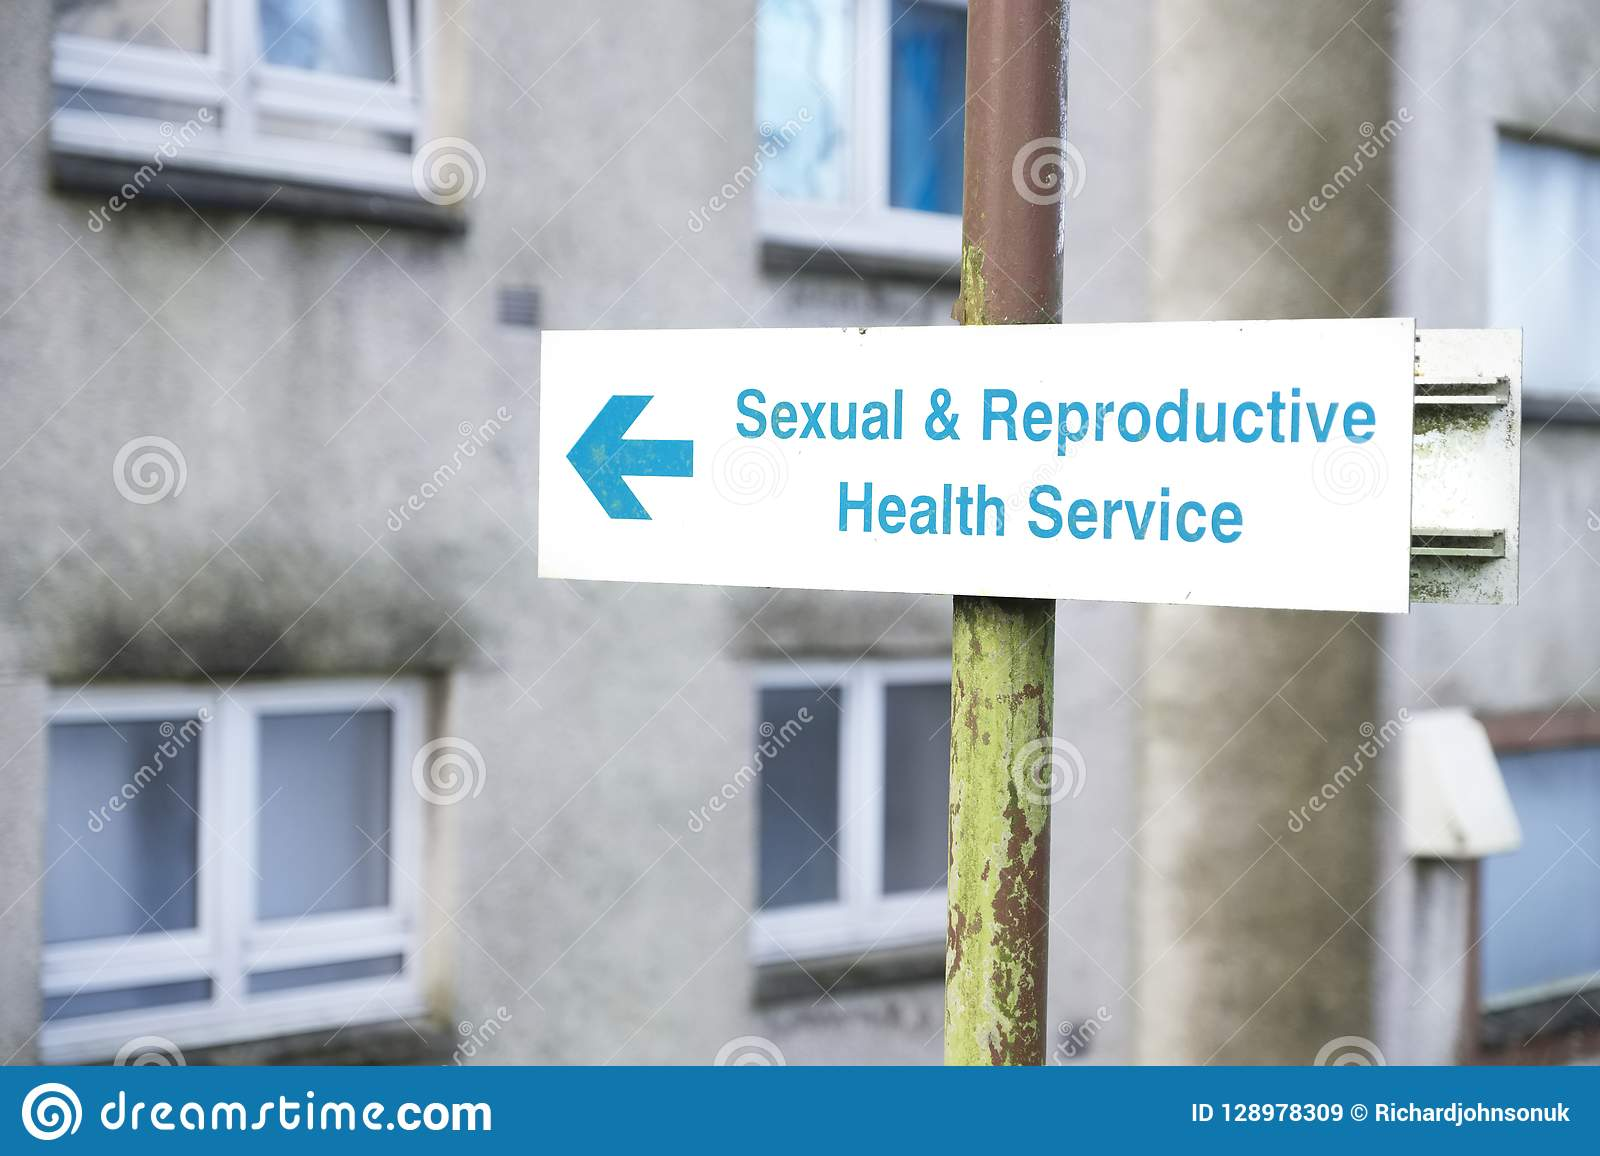 Sexual and reproductive health centre sign